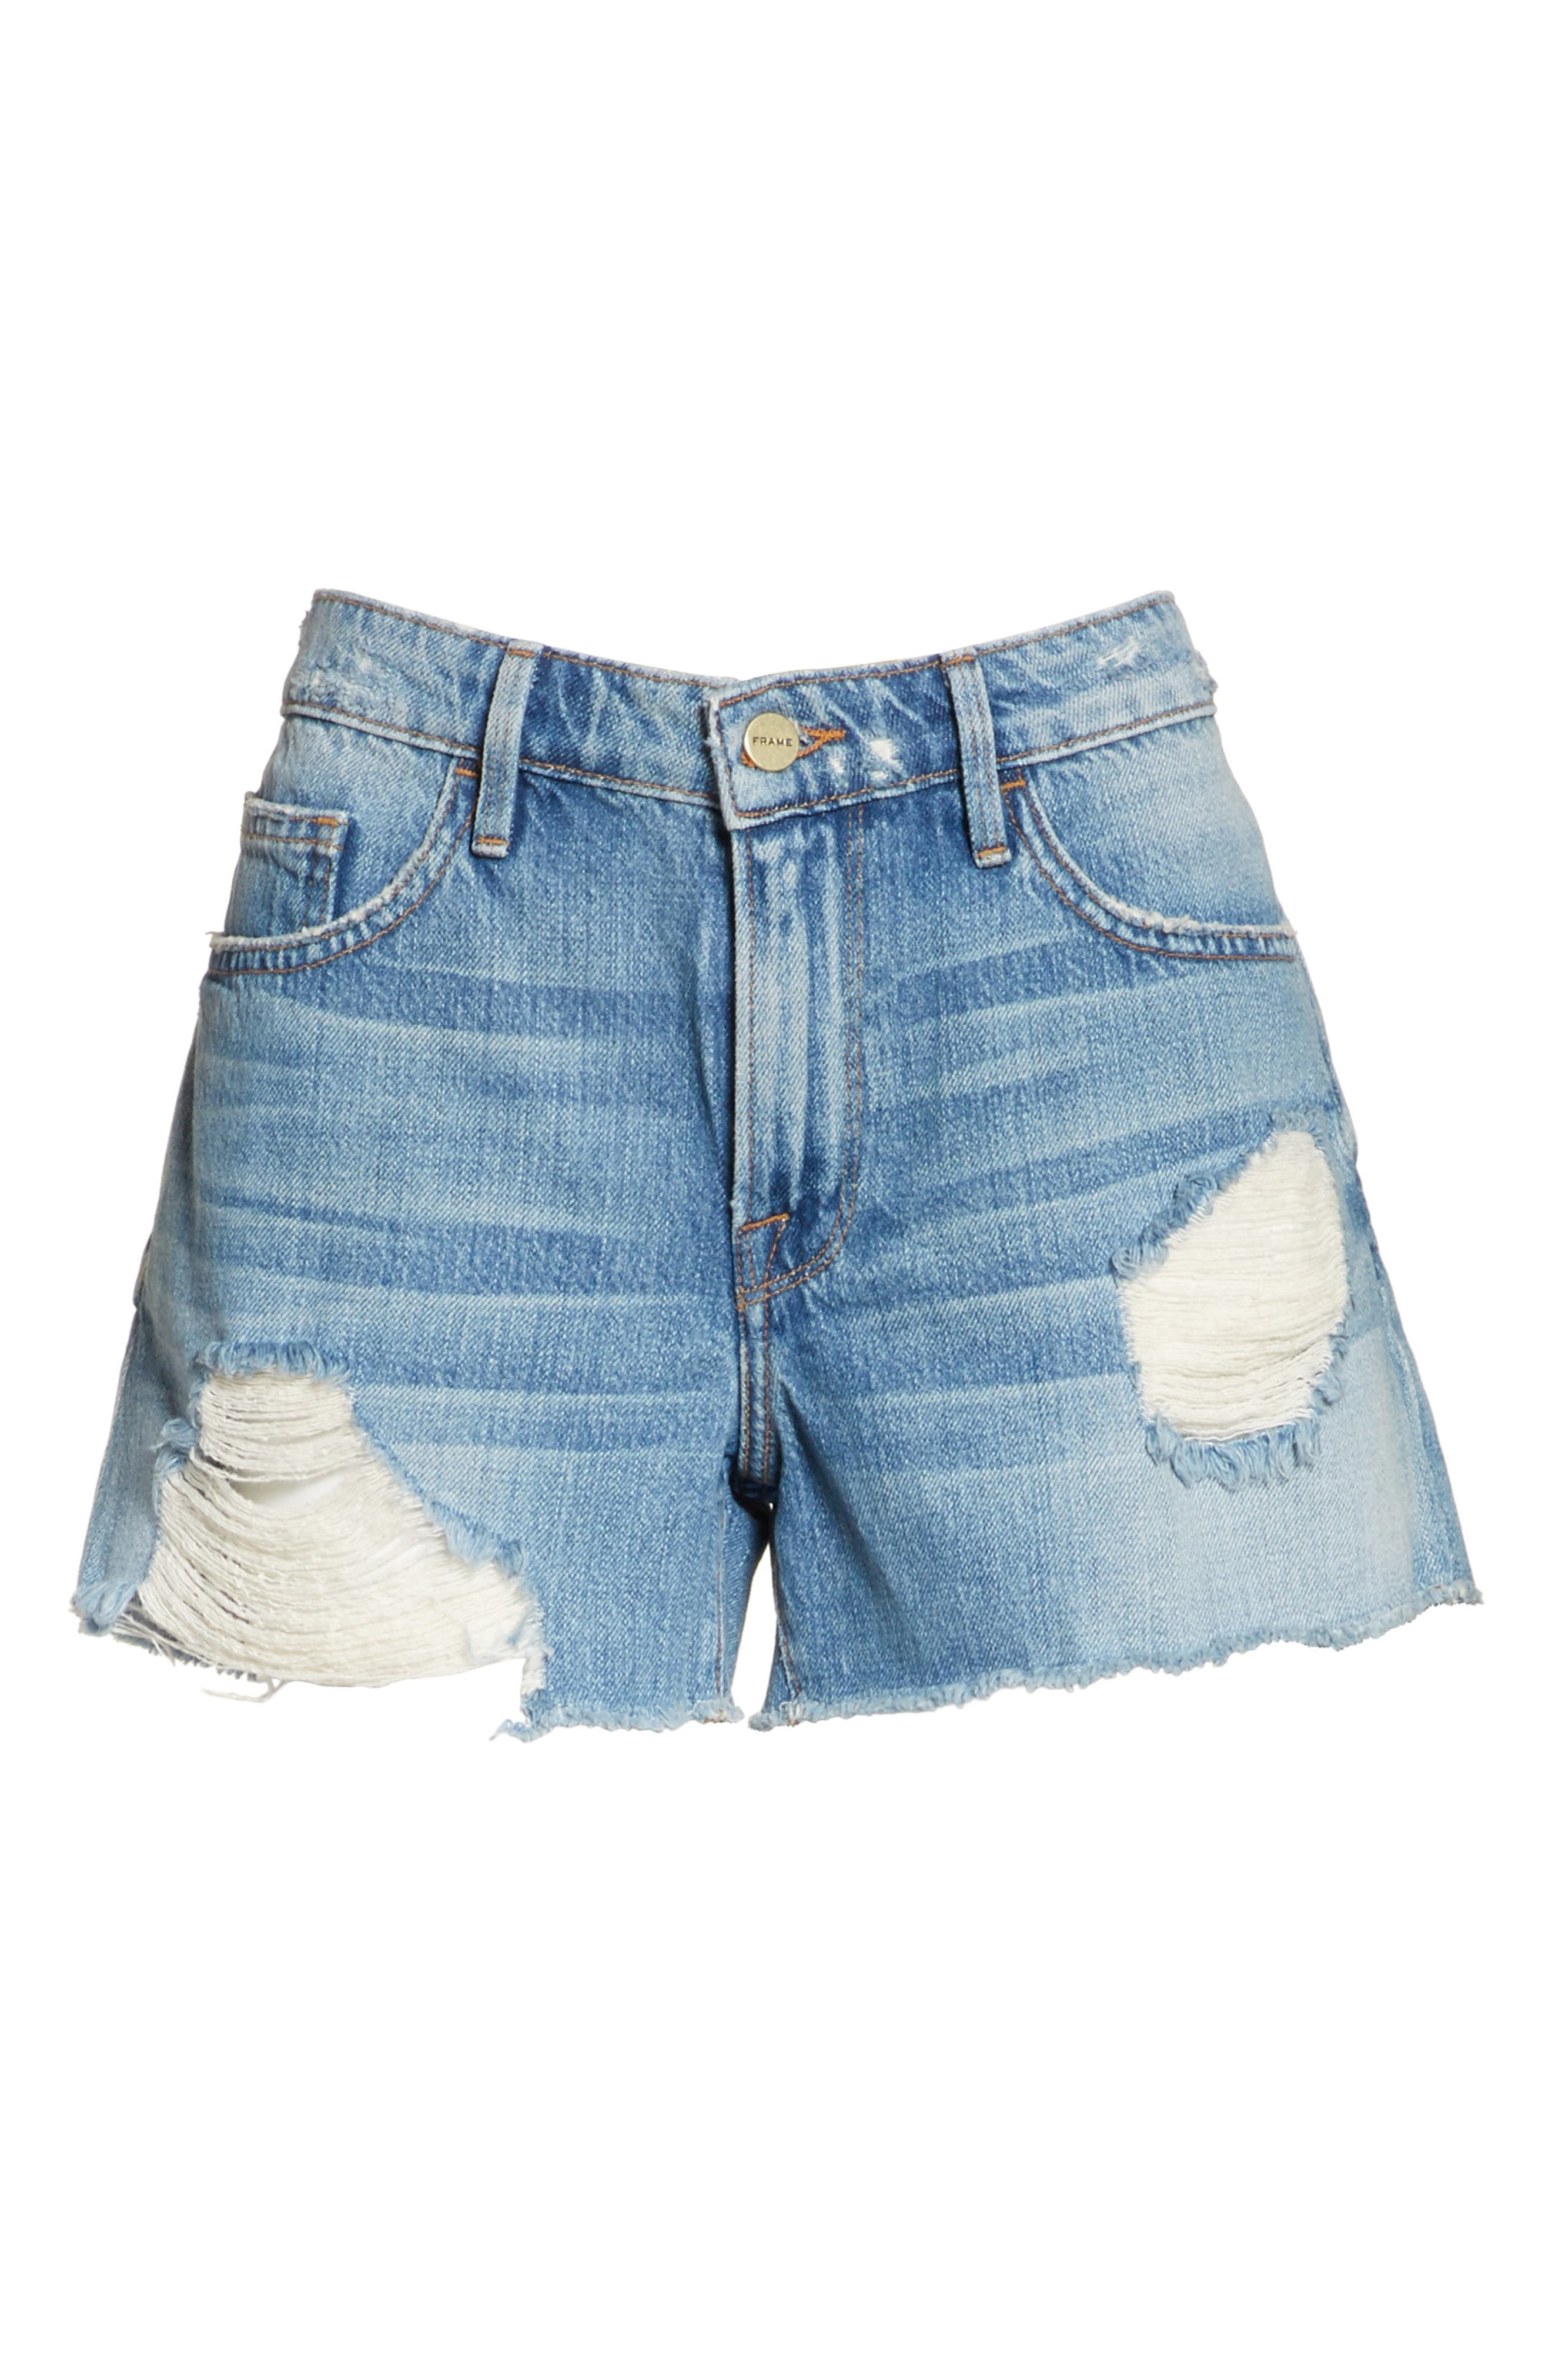 Le Grand Garçon Cutoff Denim Shorts,                             Alternate thumbnail 6, color,                             Albion